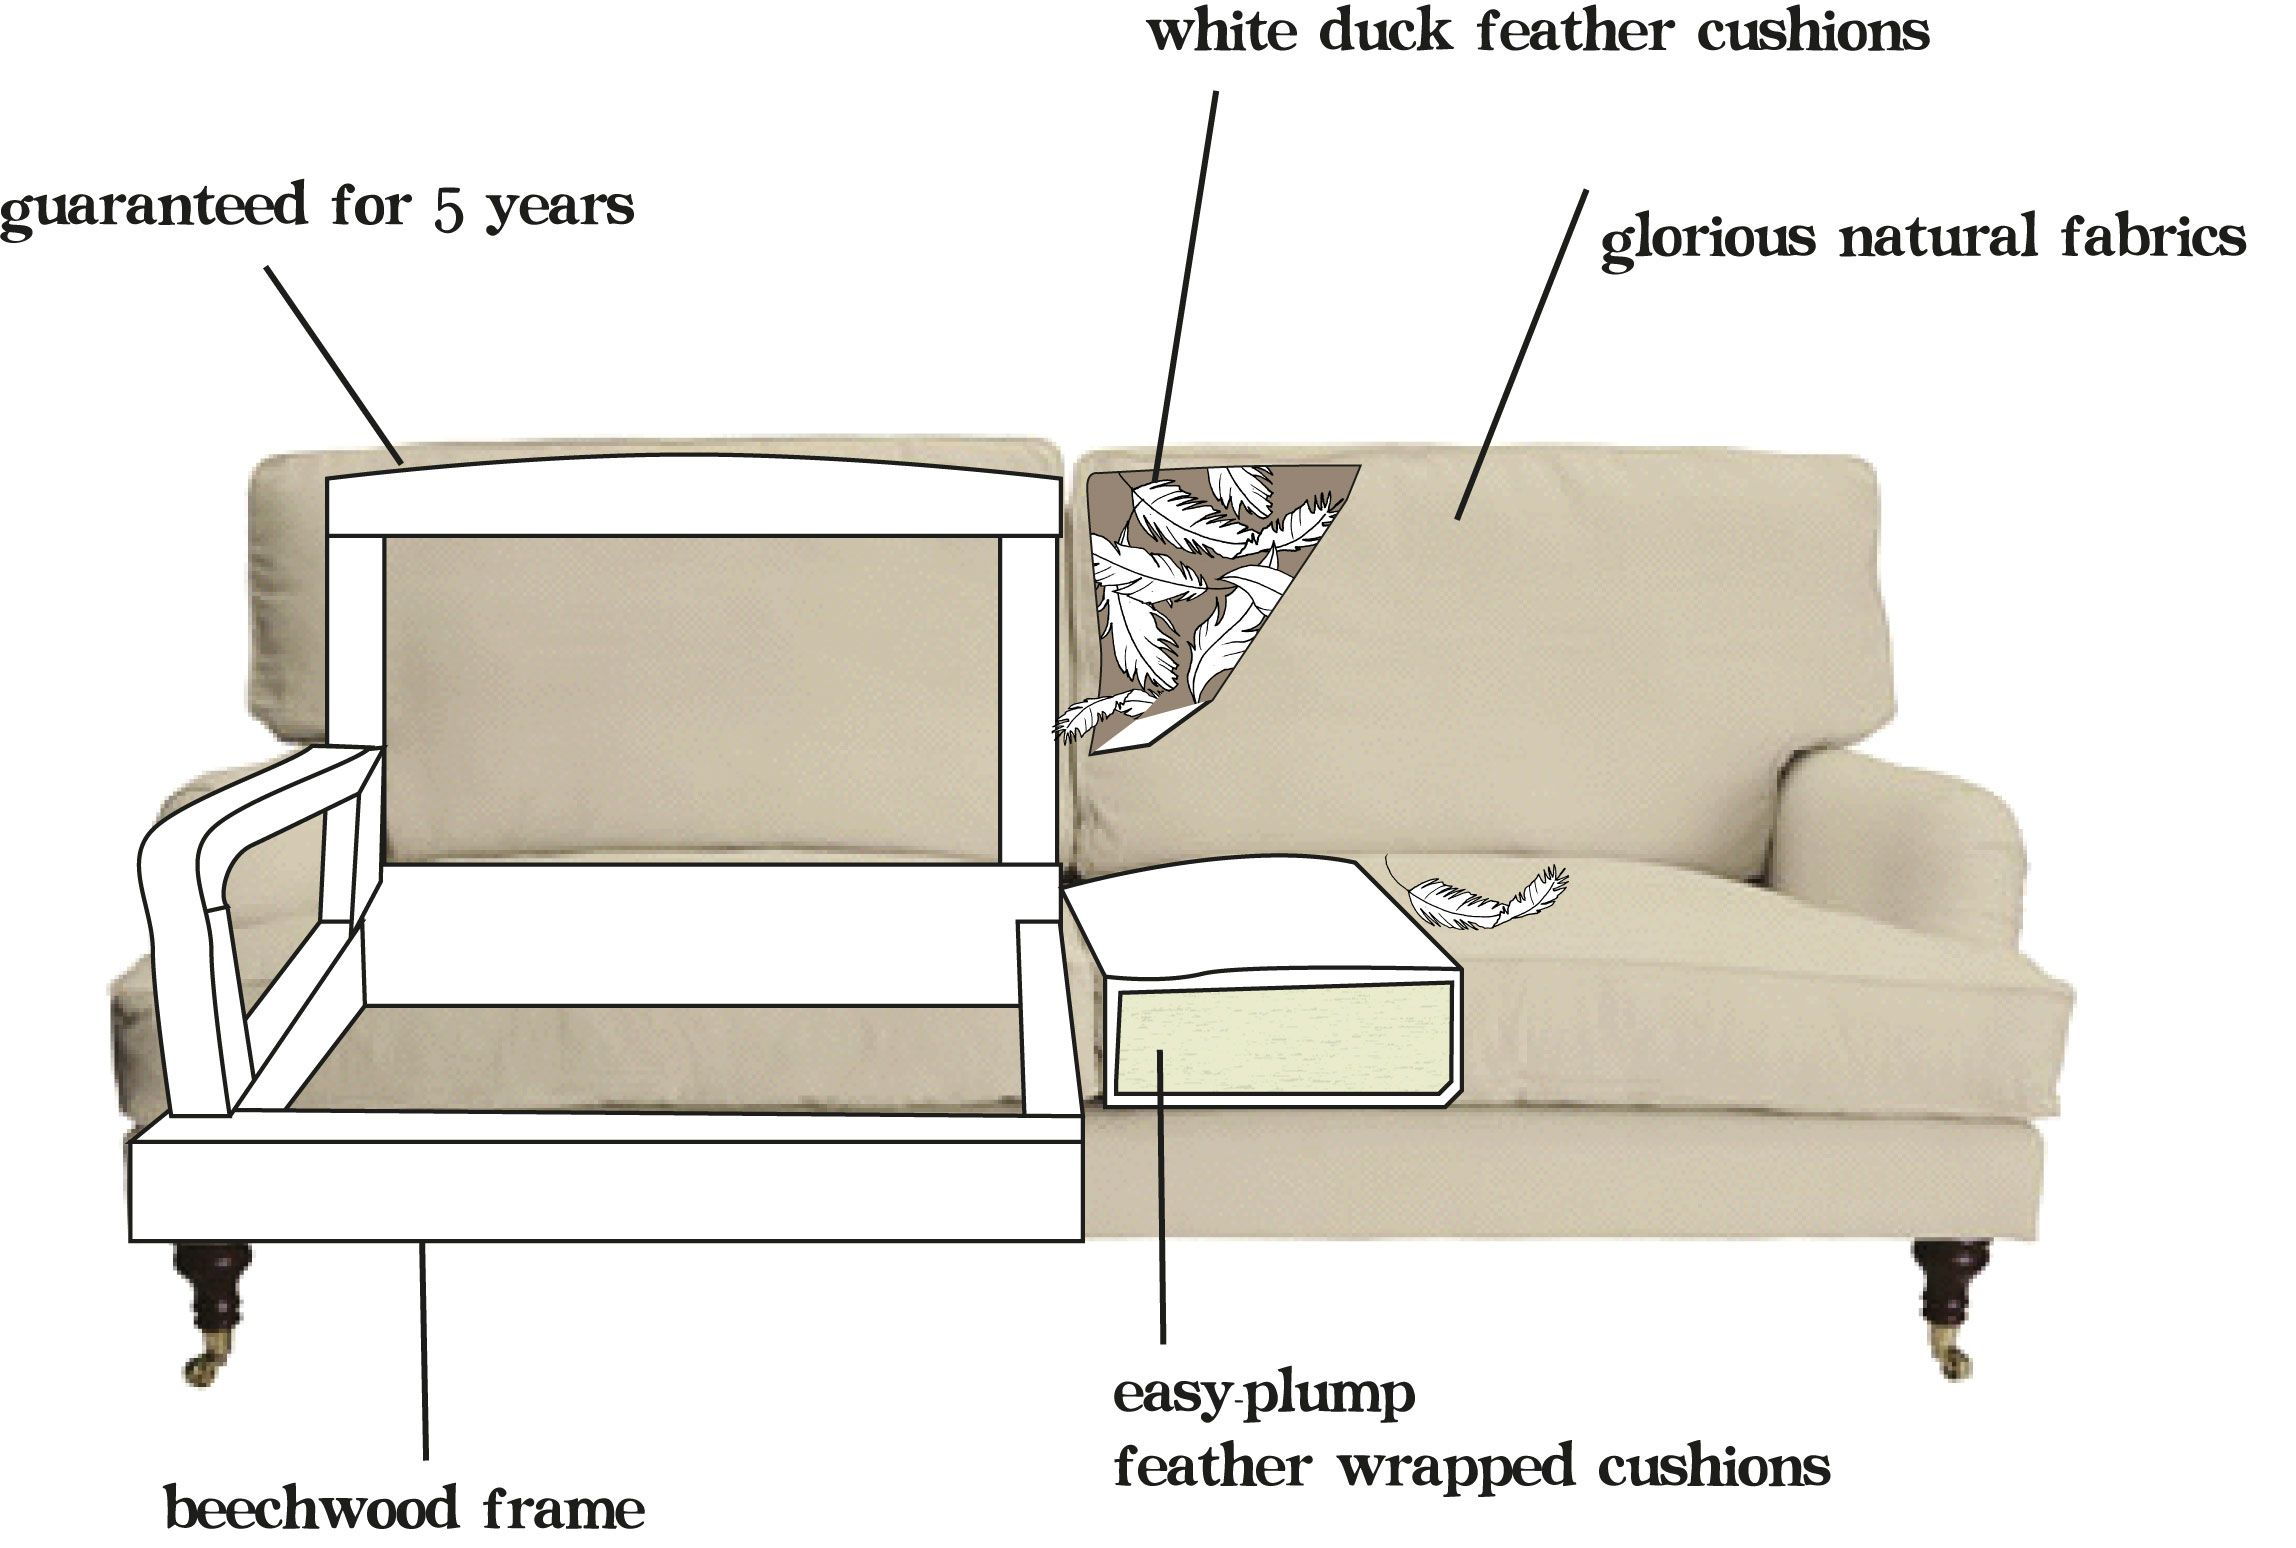 The Ins And Outs Of Our Comfy Sofas. That Bluebell Has Good Genes!